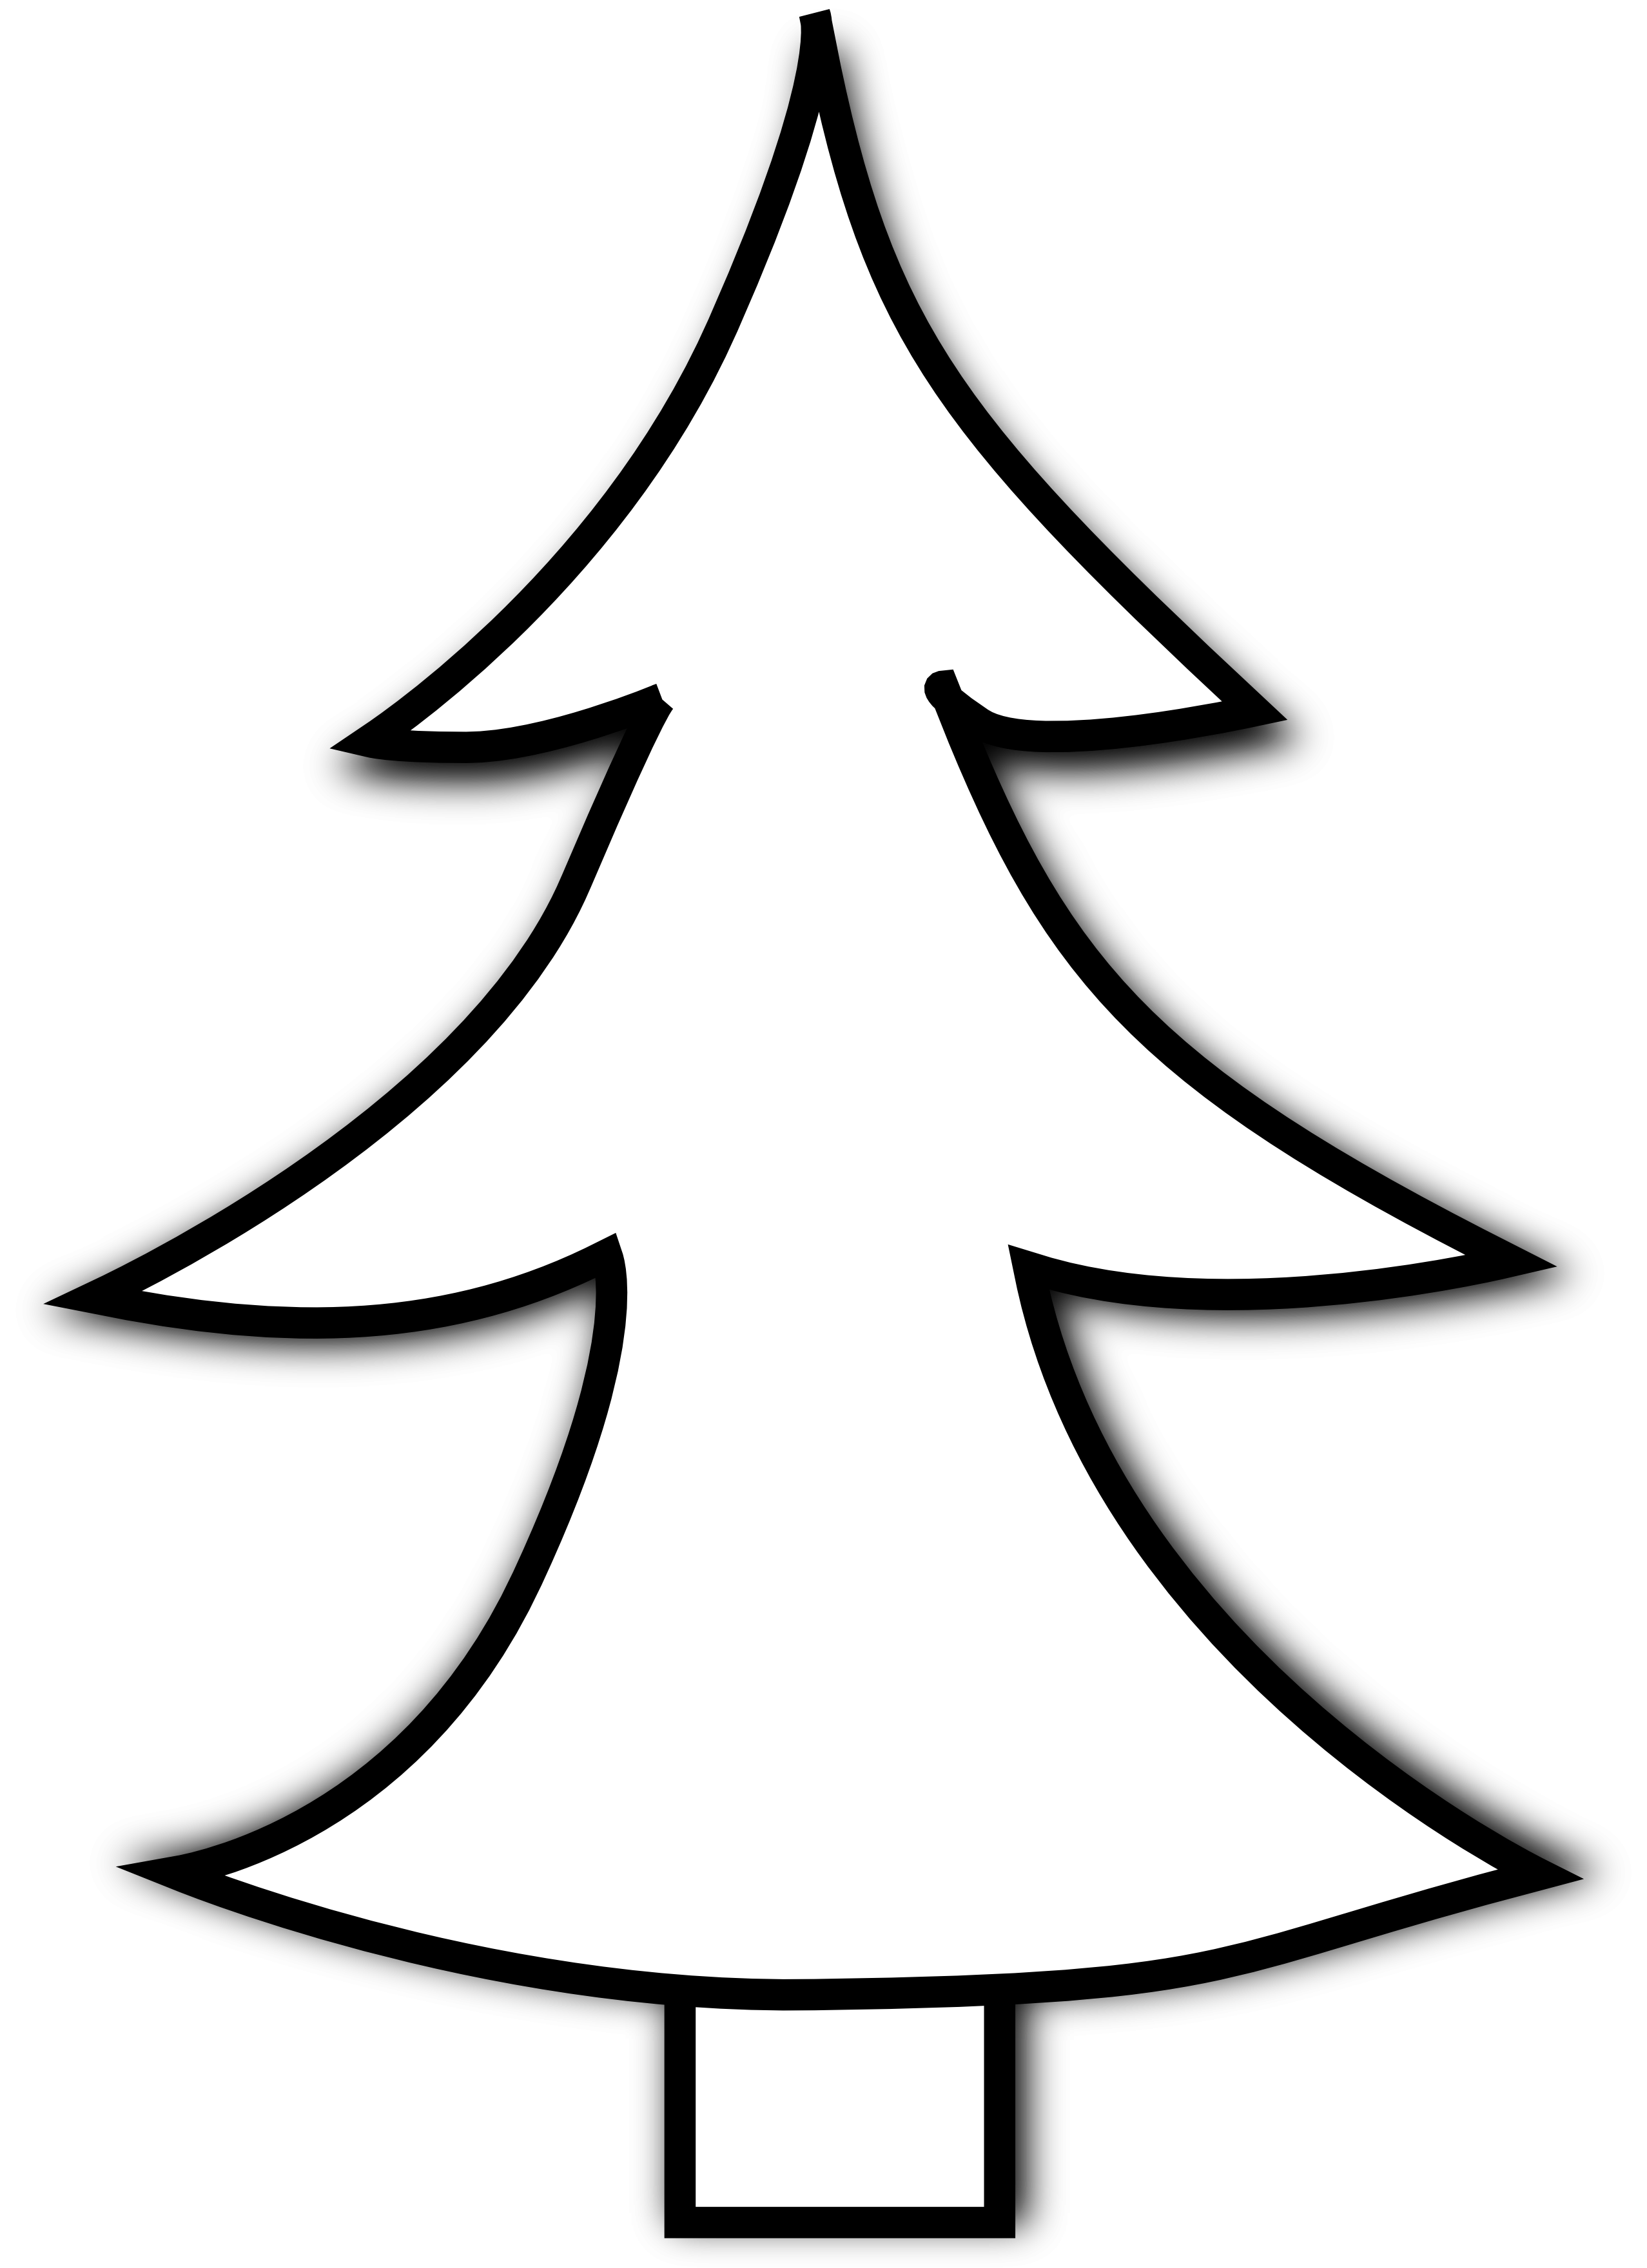 Clipart christmas tree black white image royalty free stock Christmas Tree Clipart Black And White | beneconnoi image royalty free stock